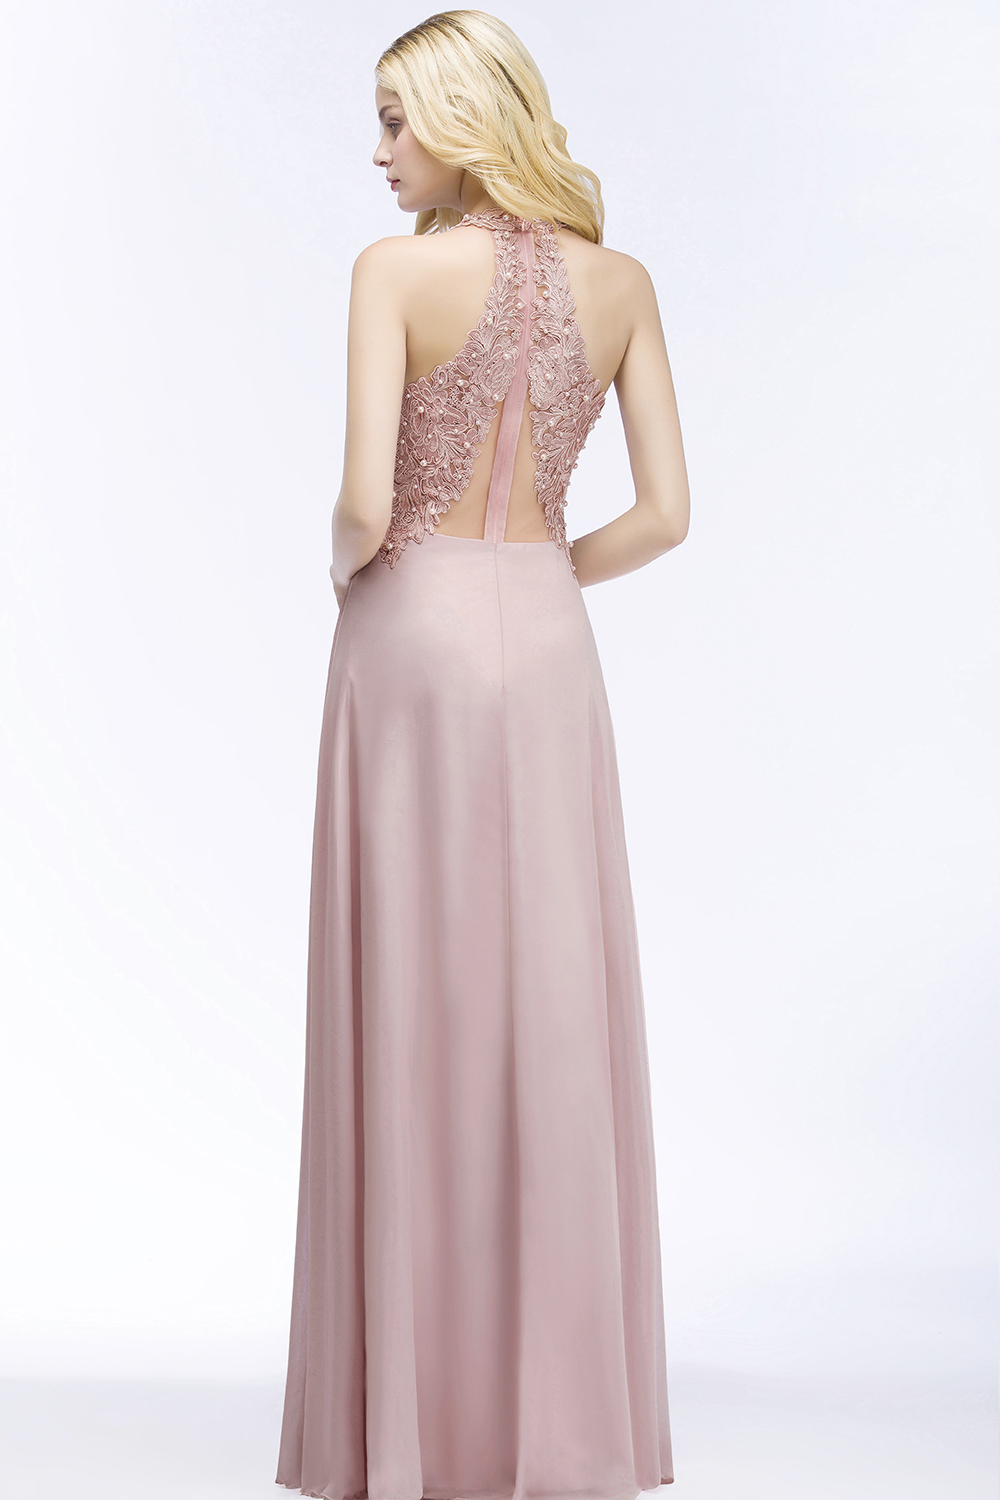 Elegant A Line Illusion Back with Pearls Floor Length Evening Dress 3